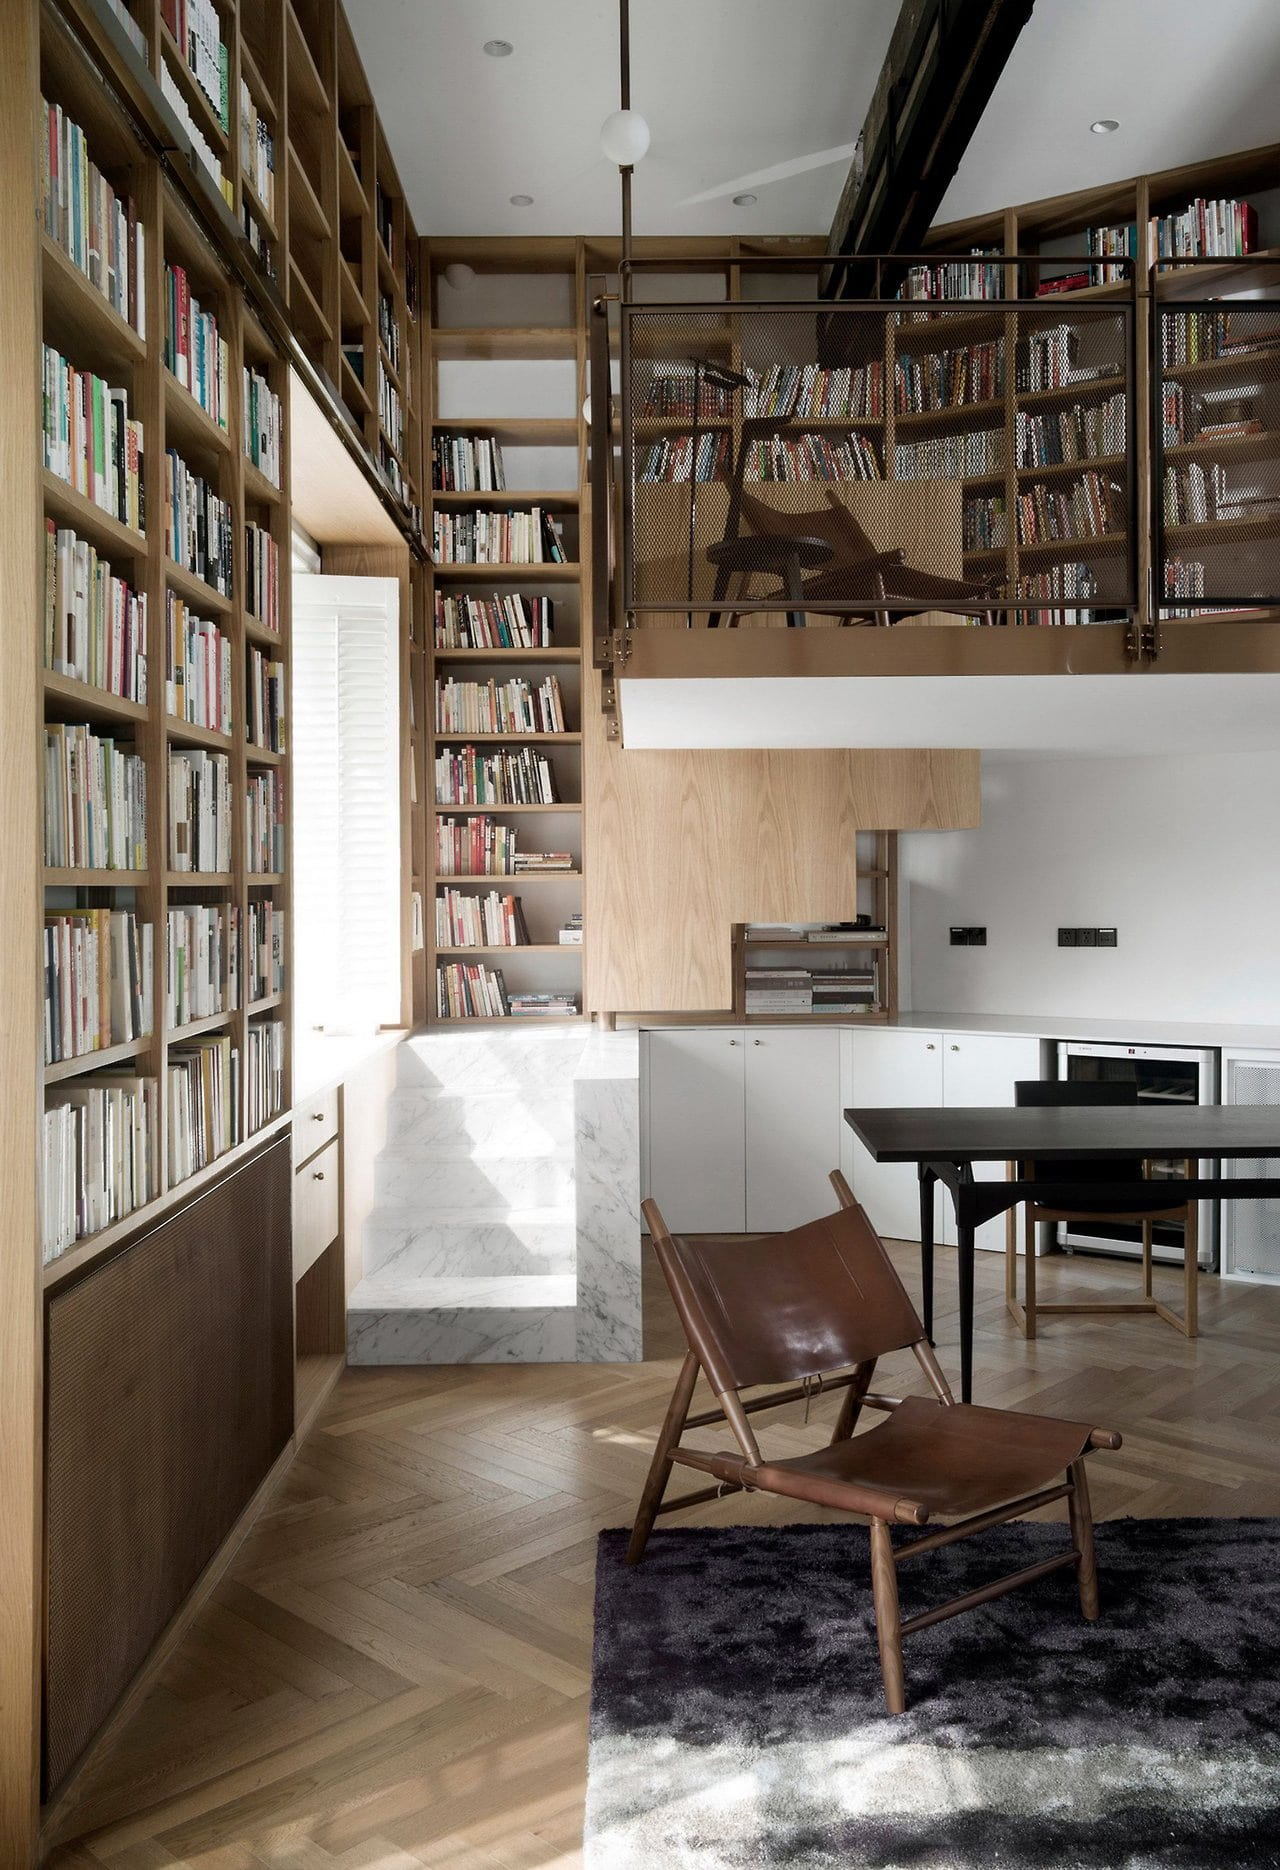 together how horizontal ceiling happy and is gallery bookcase build builtin bookshelves room decorated office billy bookcases to desk ladder floor with sliding where roselawnlutheran attach walltowall home shelves remodelaholic